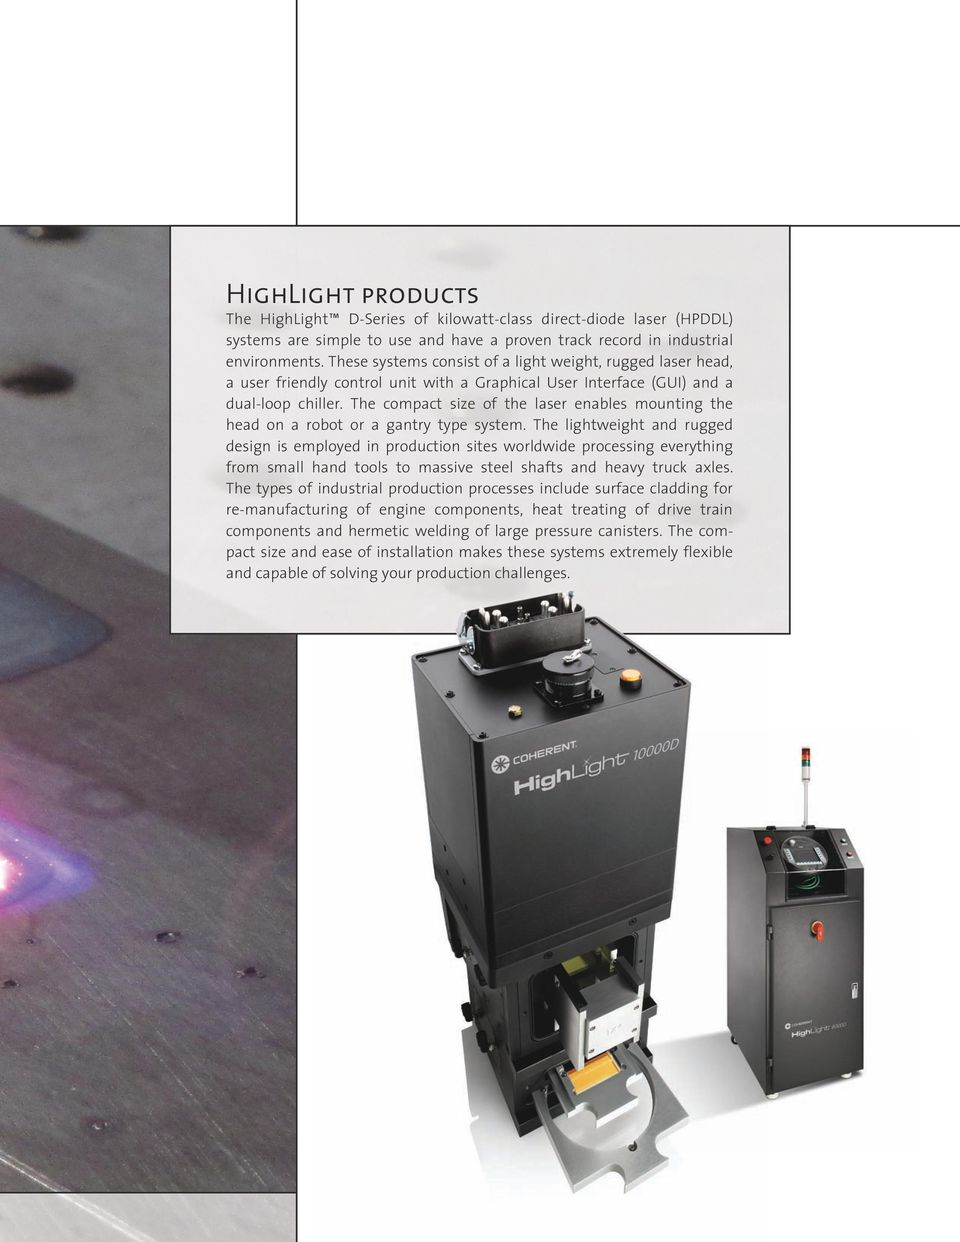 The compact size of the laser enables mounting the head on a robot or a gantry type system.